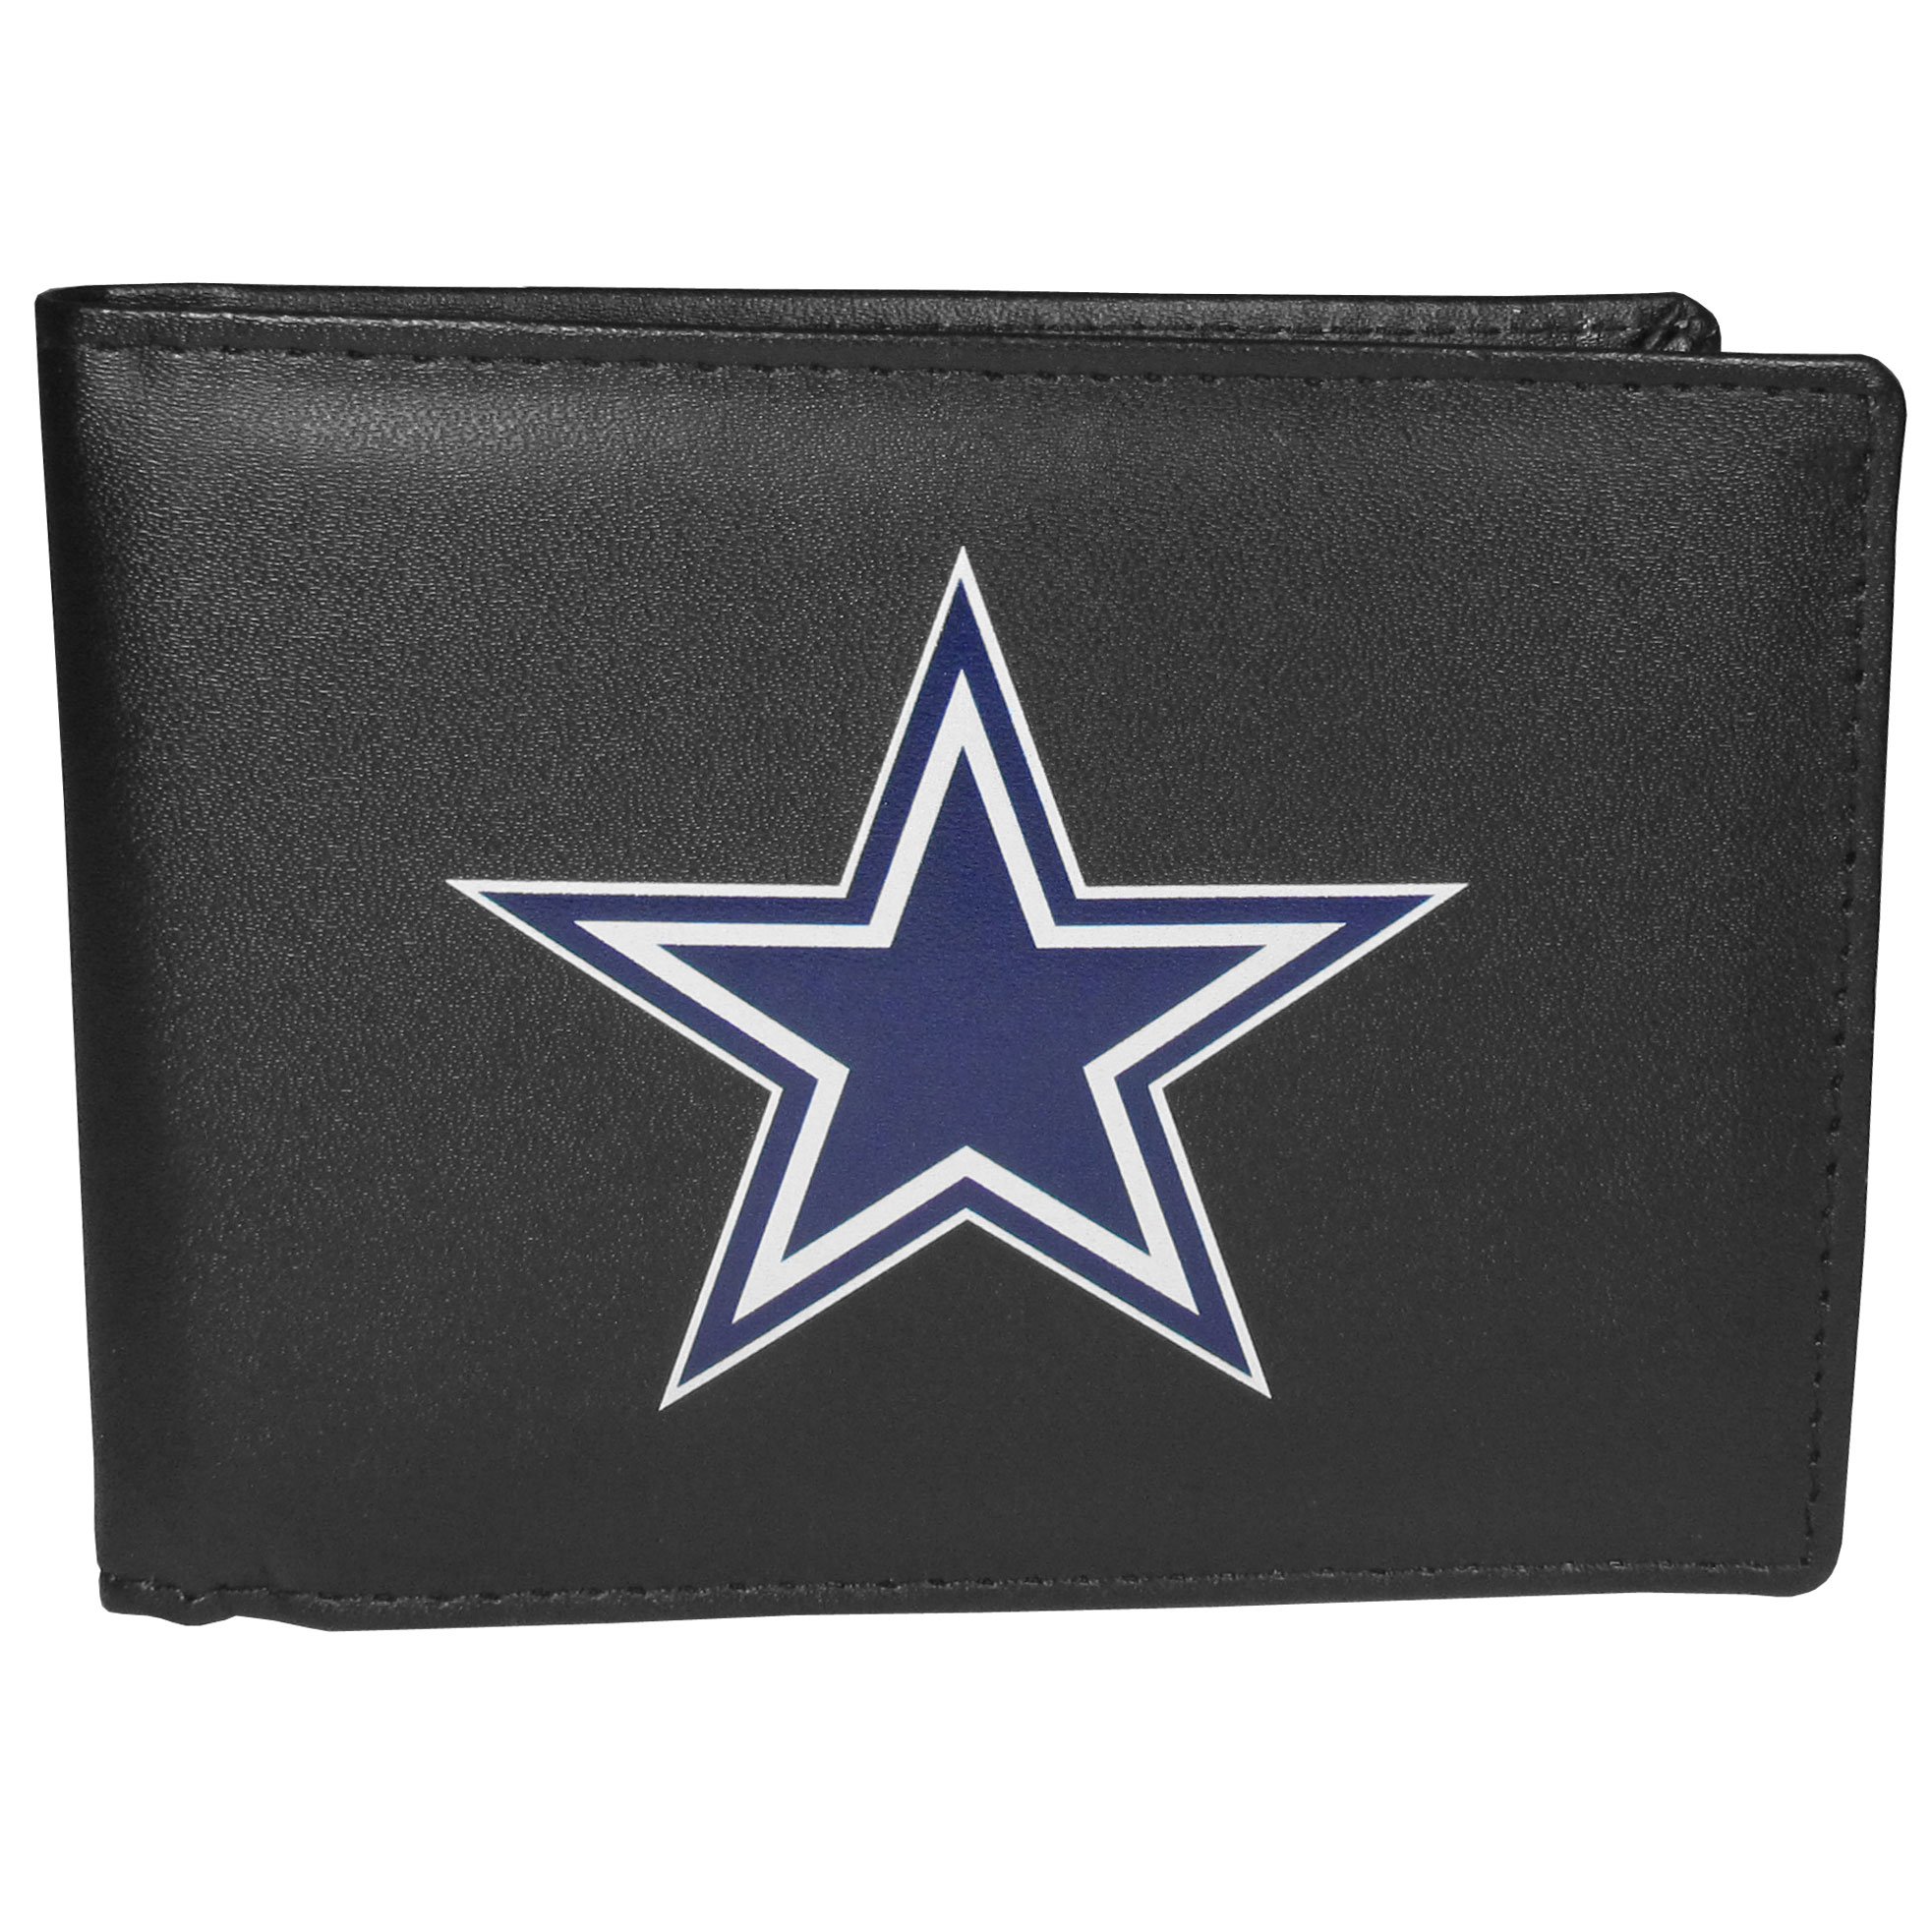 Dallas Cowboys Bi-fold Wallet Large Logo - Sports fans do not have to sacrifice style with this classic bi-fold wallet that sports the Dallas Cowboys extra large logo. This men's fashion accessory has a leather grain look and expert craftmanship for a quality wallet at a great price. The wallet features inner credit card slots, windowed ID slot and a large billfold pocket. The front of the wallet features a printed team logo.